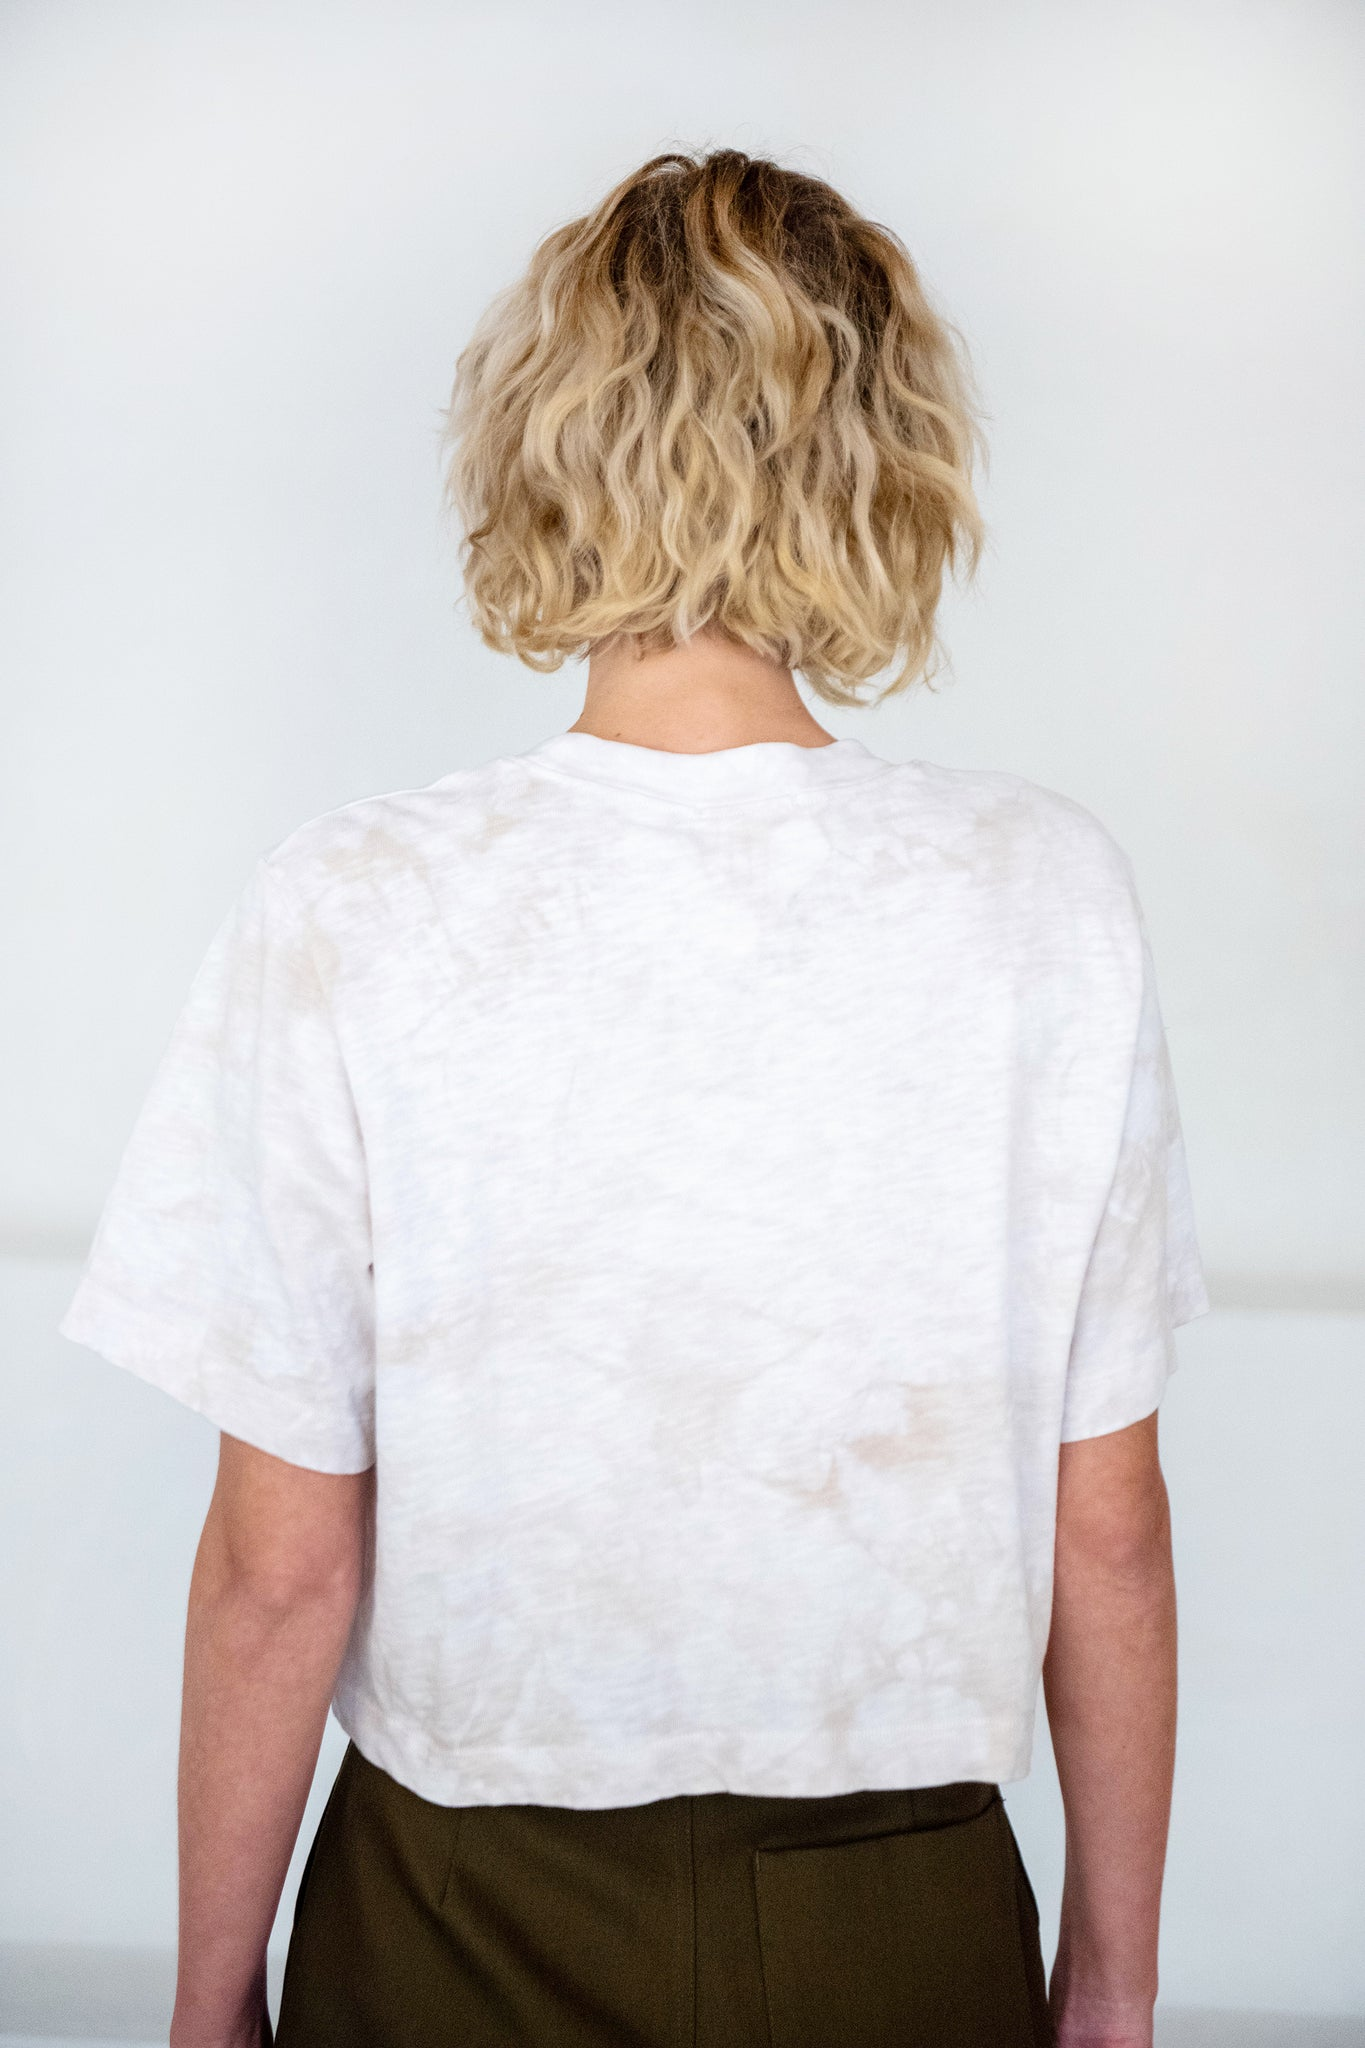 Cotton Citizen - Tokyo tee, pearl crystal